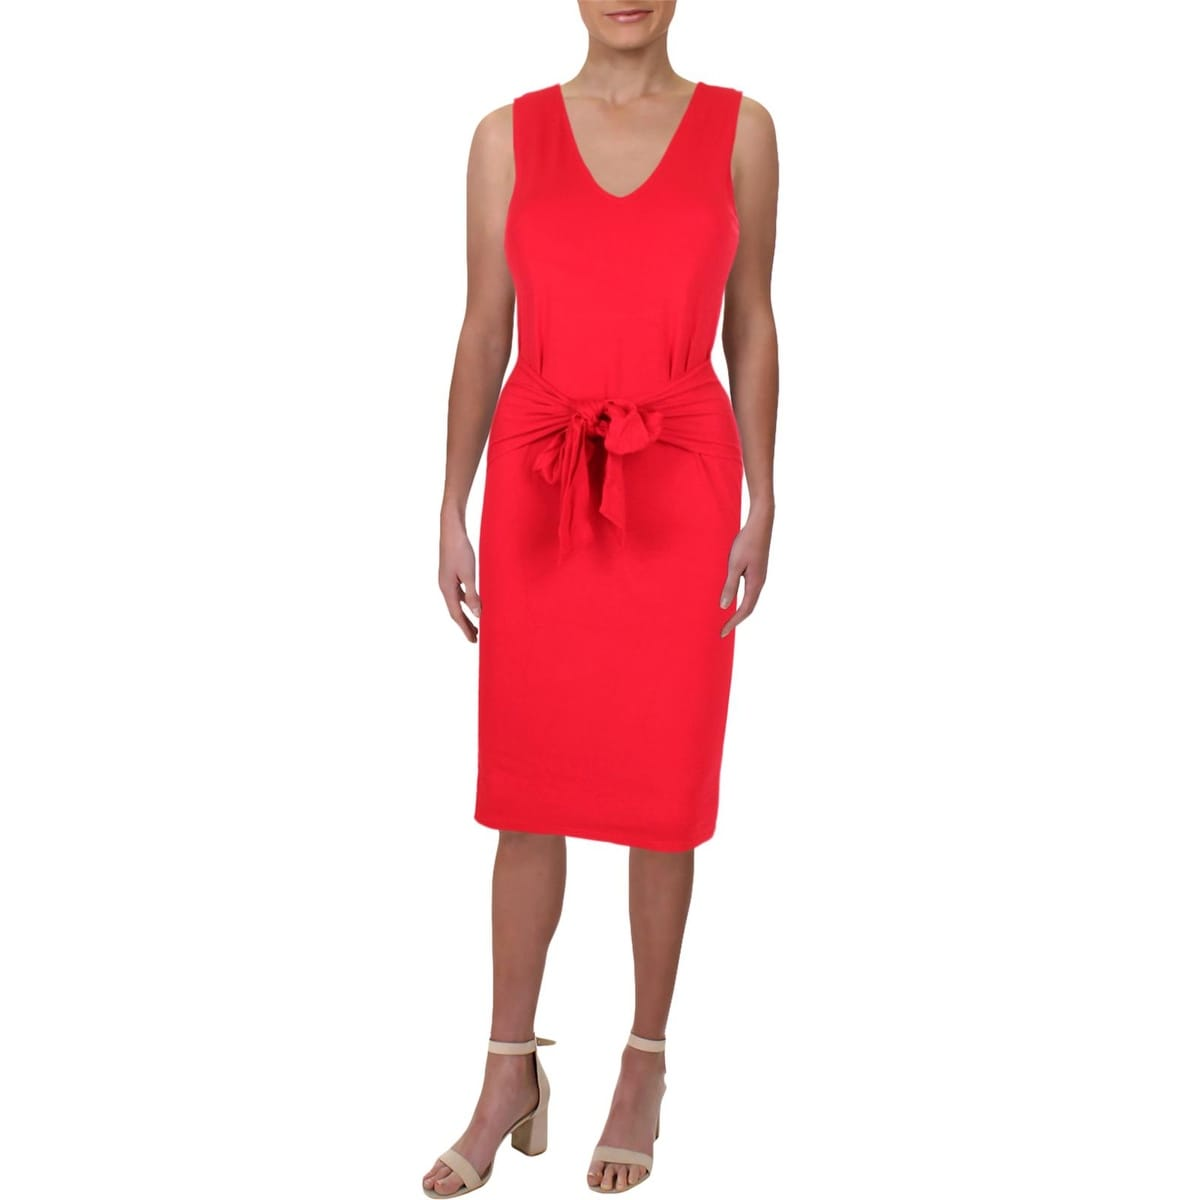 90c927af603f Red LAUREN Ralph Lauren Dresses | Find Great Women's Clothing Deals  Shopping at Overstock